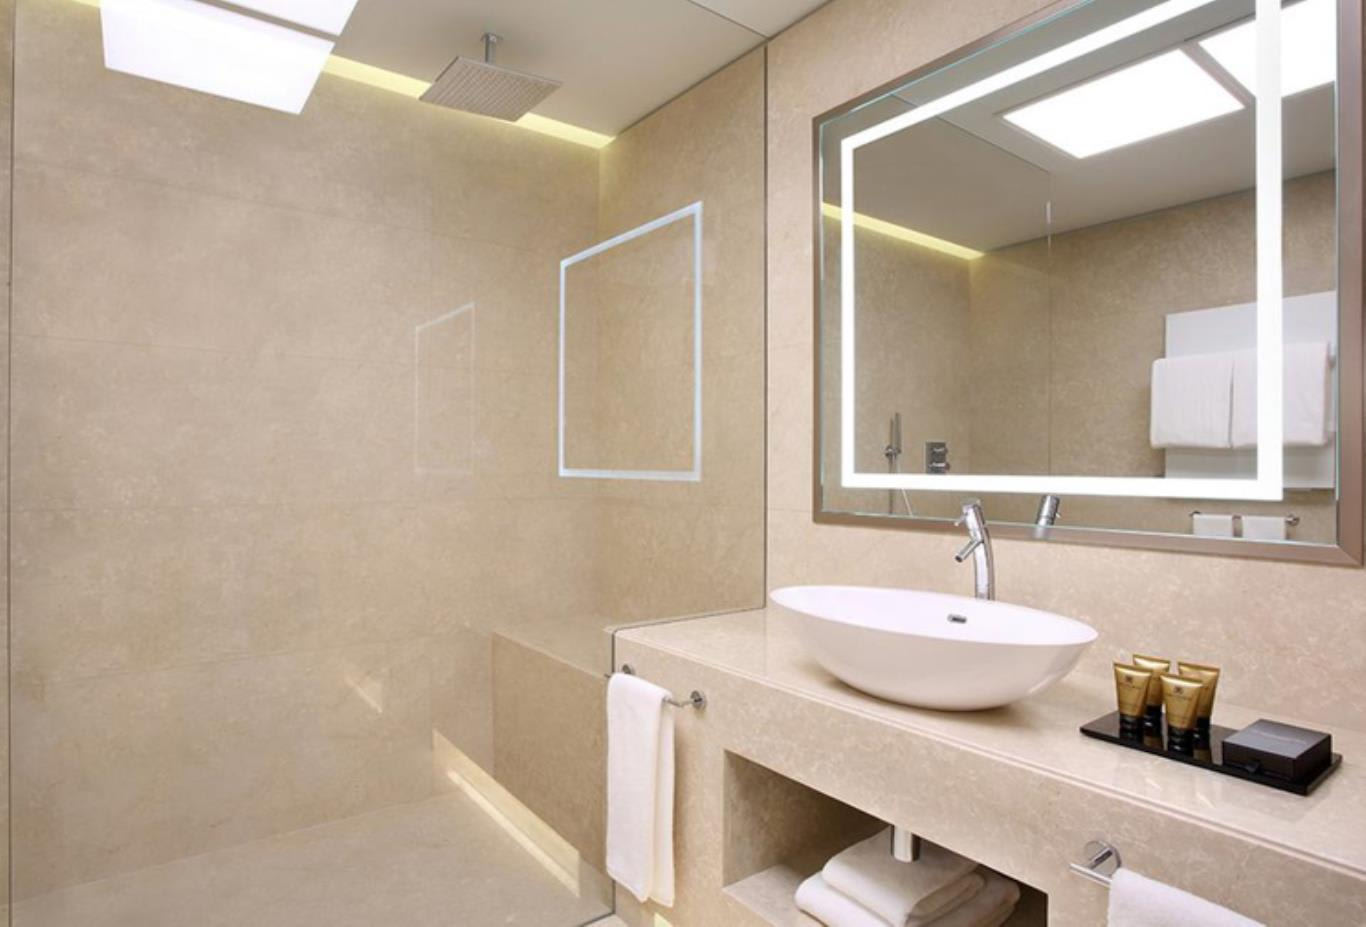 King Double Room bathroom